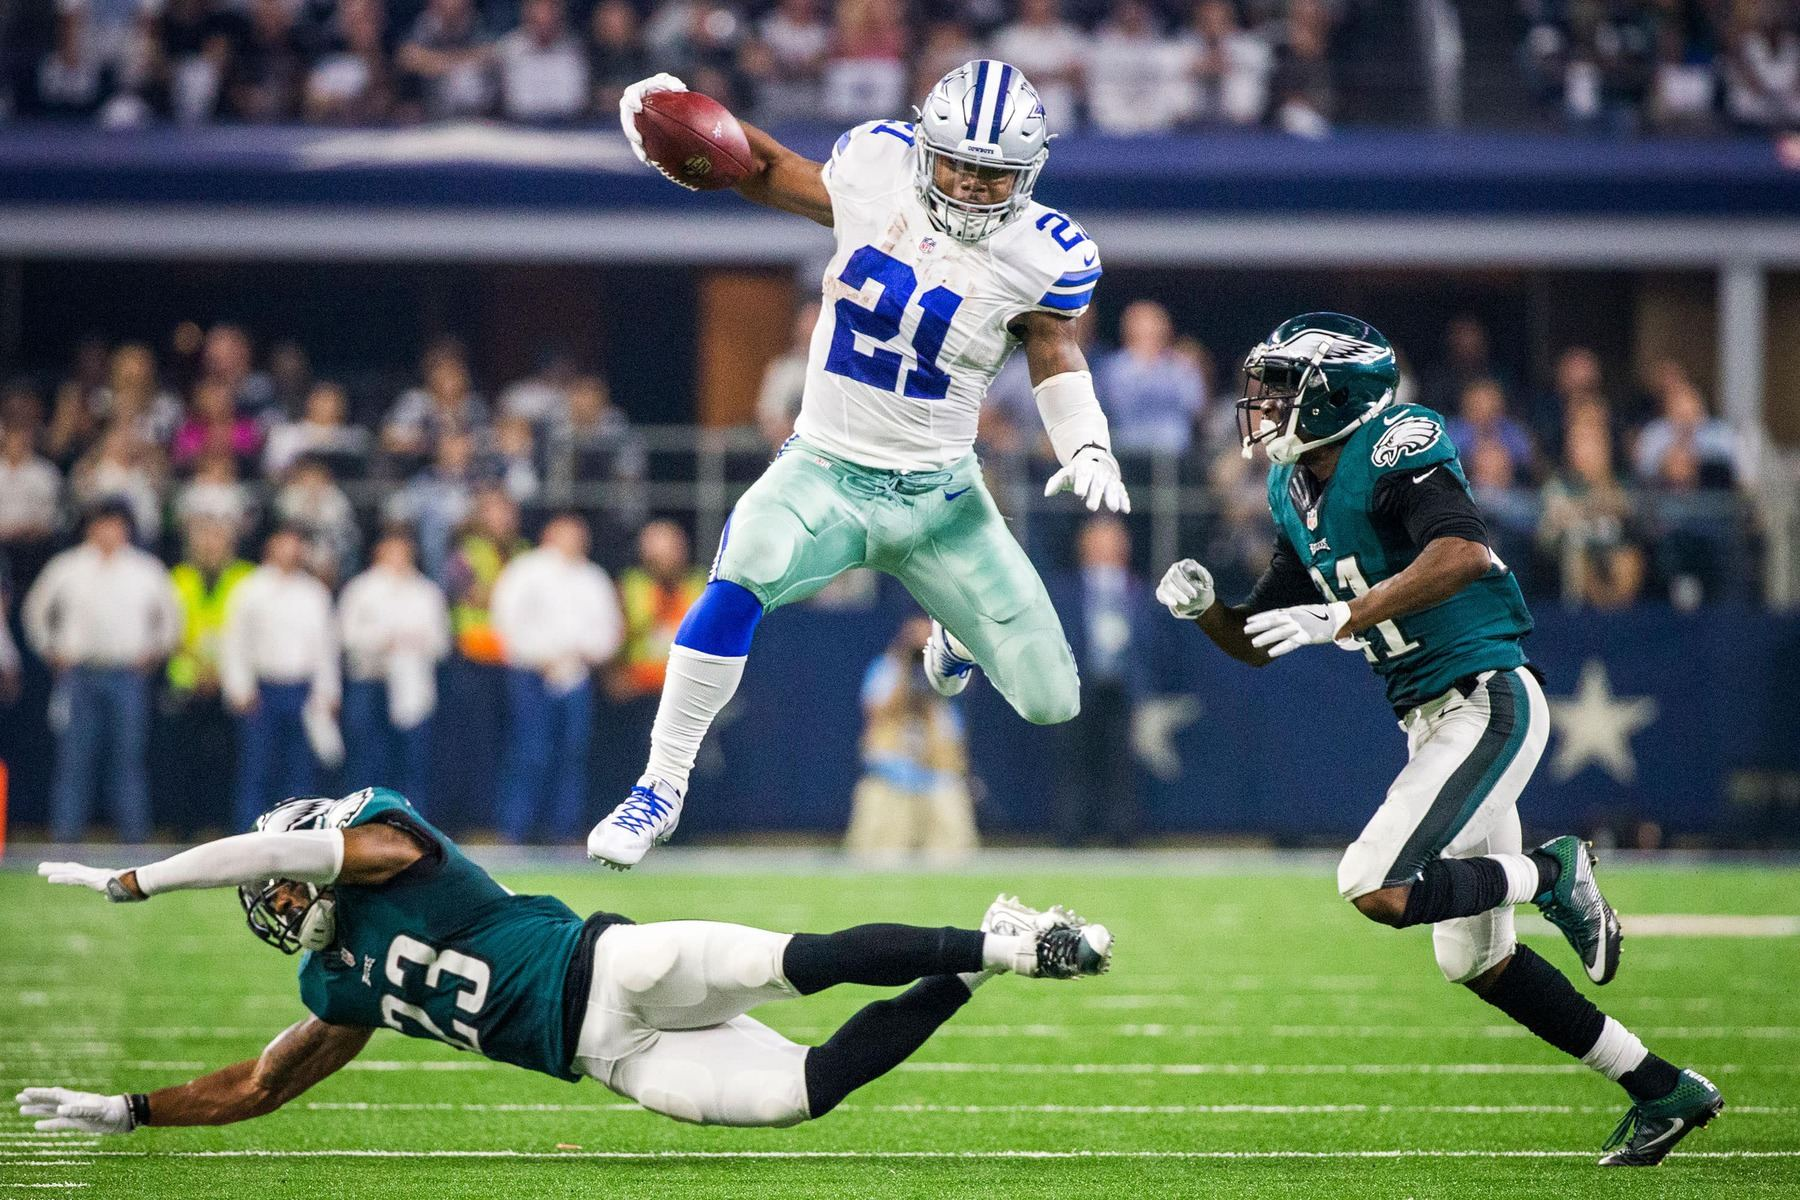 When will Ezekiel Elliott return to the Dallas Cowboys from suspension?